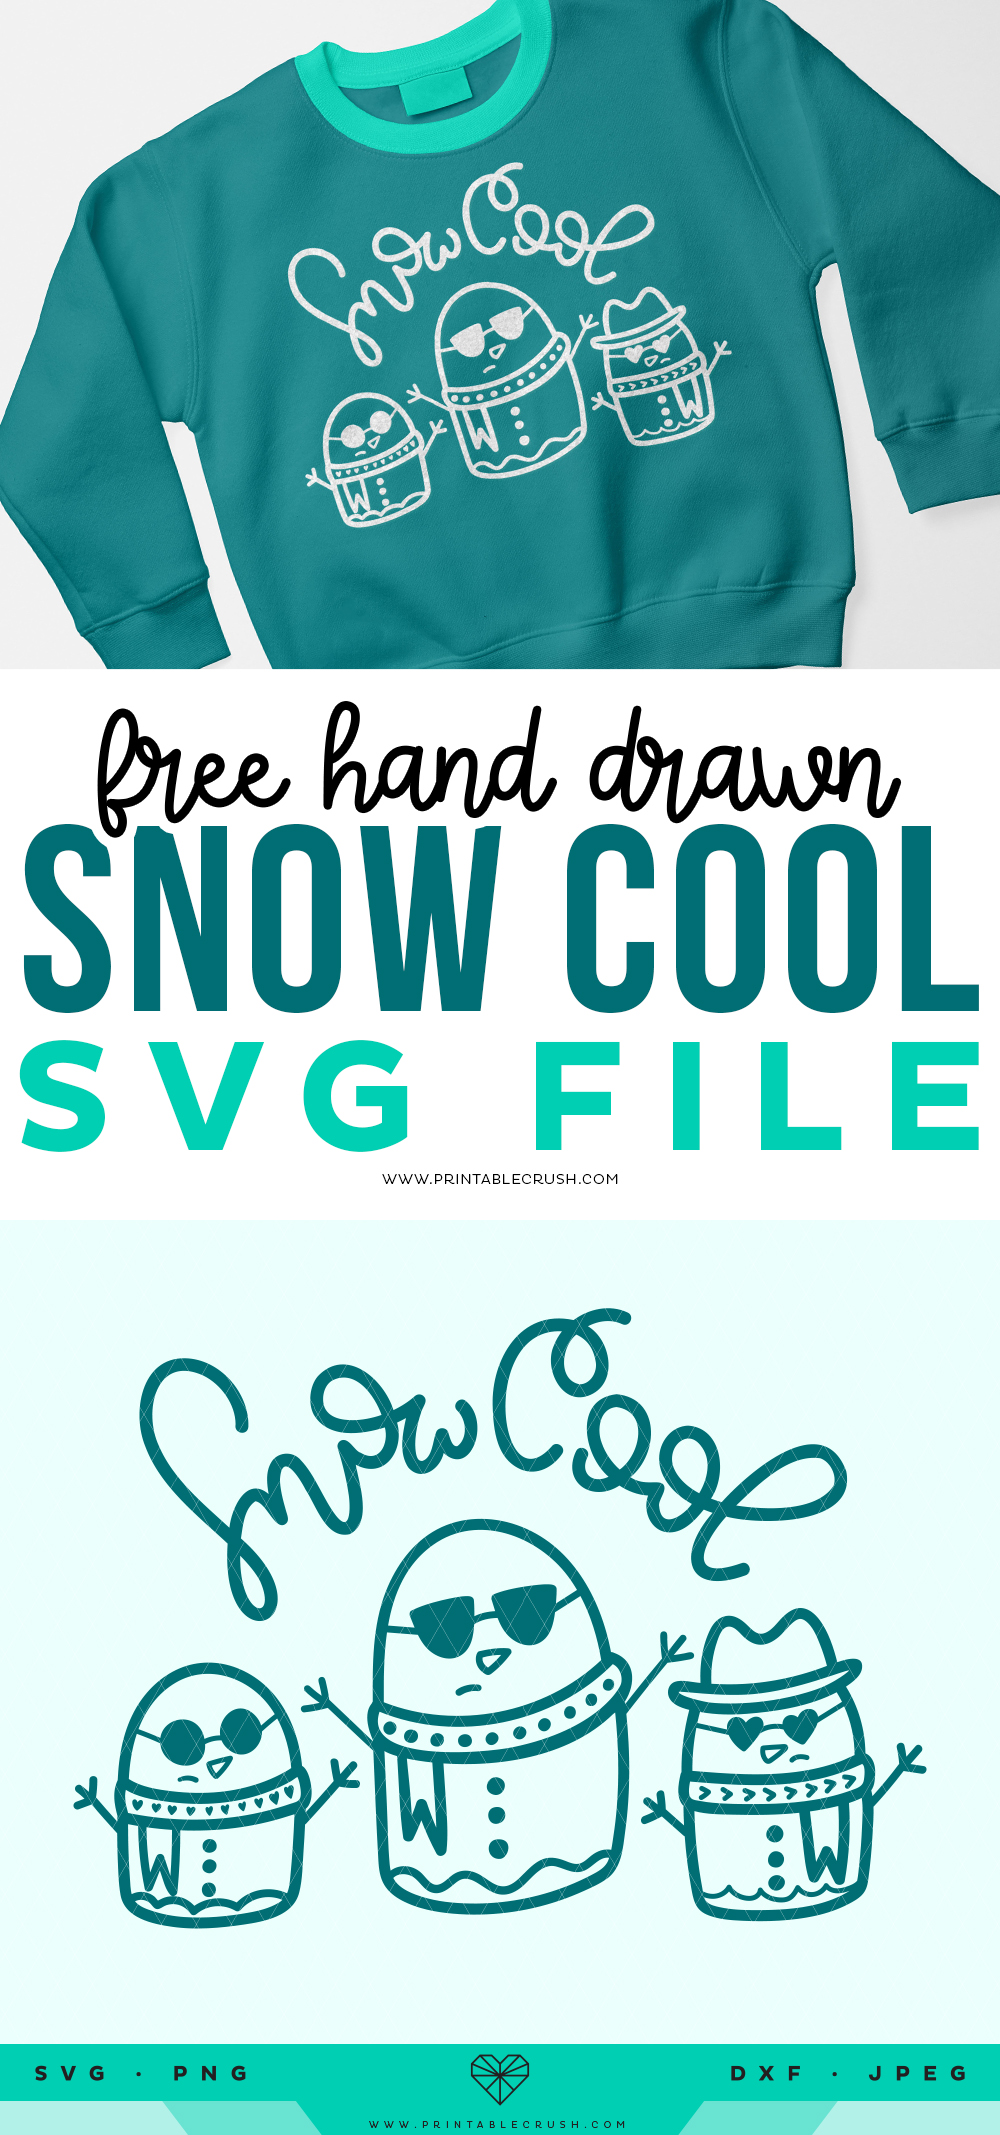 Hand Drawn Snowman SVG File - Free Winter Snowman SVG File - Snow Cool SVG File - Printable Crush